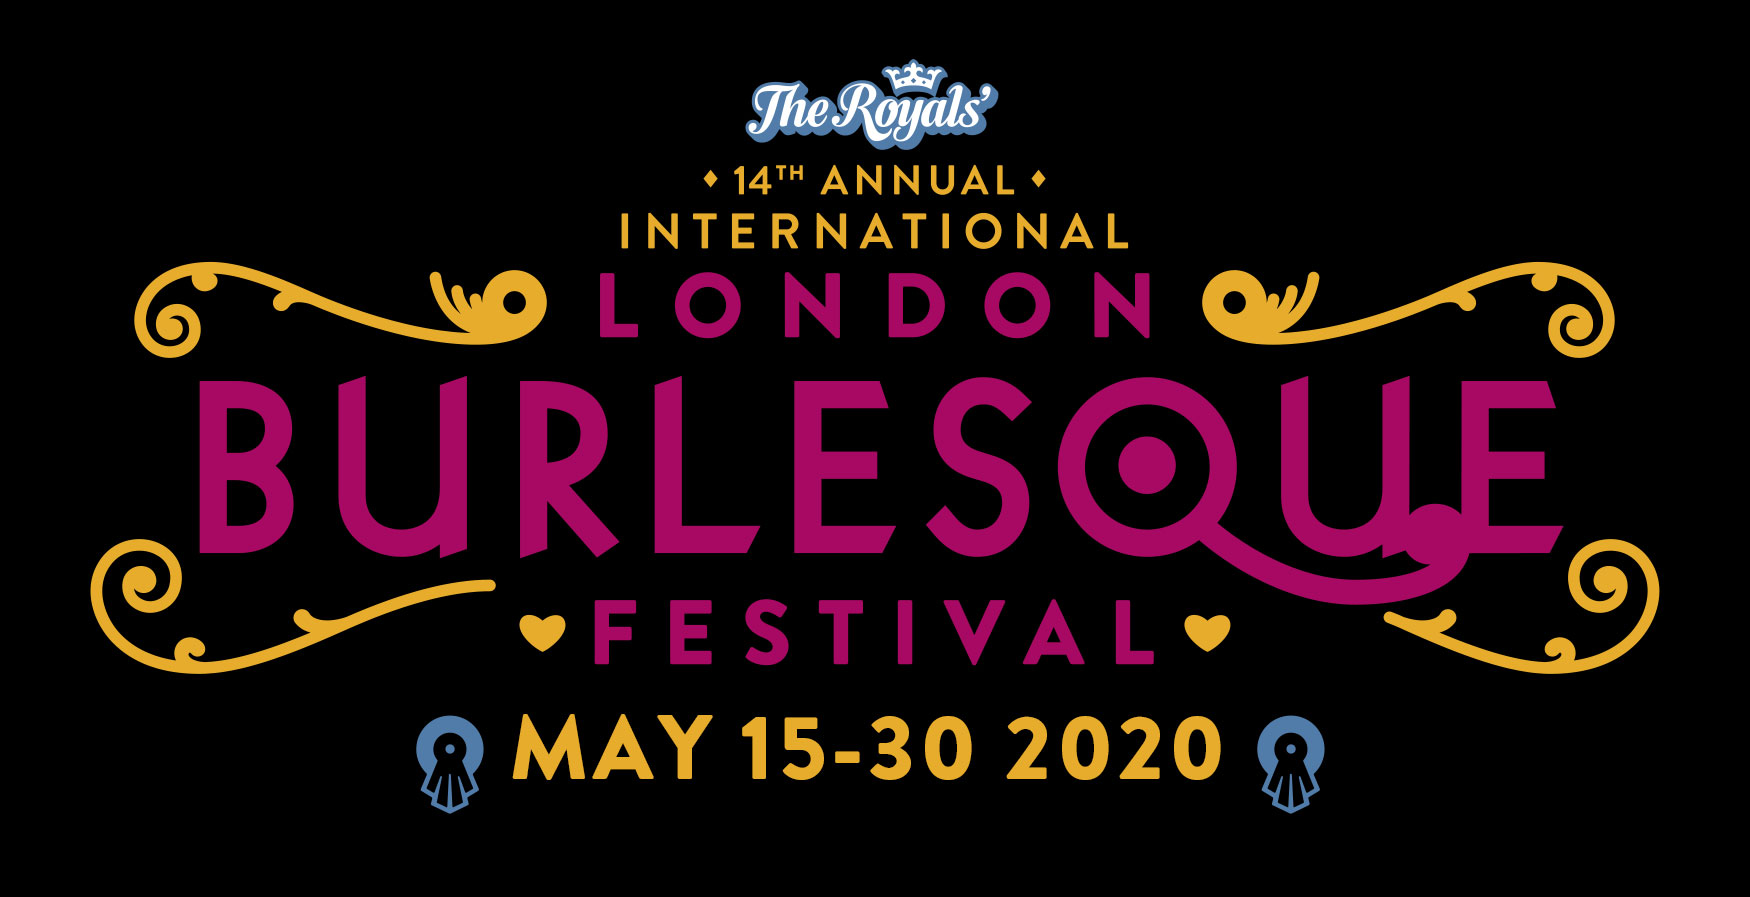 London Burlesque Festival 2020: BURLESQUE, GIN & JAZZ